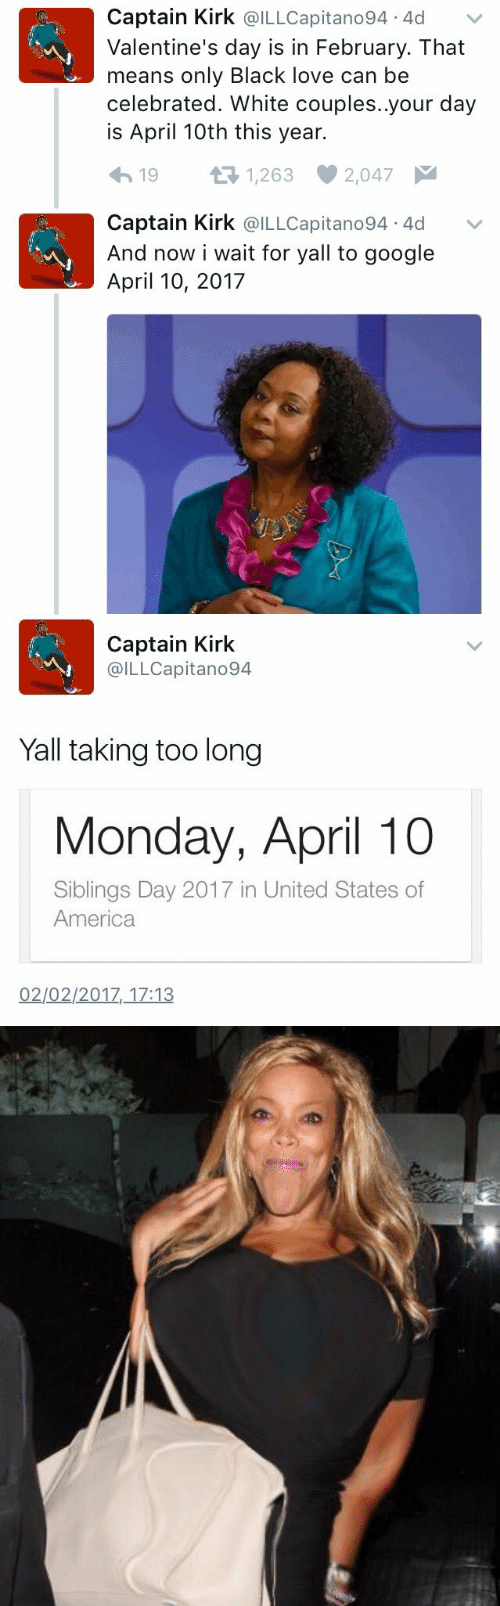 2017 In: Captain Kirk @ILLCapitano94 4d  Valentine's day is in February. That  means only Black love can be  celebrated. White couples..your day  is April 10th this year.  t 1,263  19  2,047  Captain Kirk @ILLCapitano94 4d  And now i wait for yall to google  April 10, 2017   Captain Kirk  @ILLCapitano94  Yall taking too long  Monday, April 10  Siblings Day 2017 in United States of  America  02/02/2017, 17:13